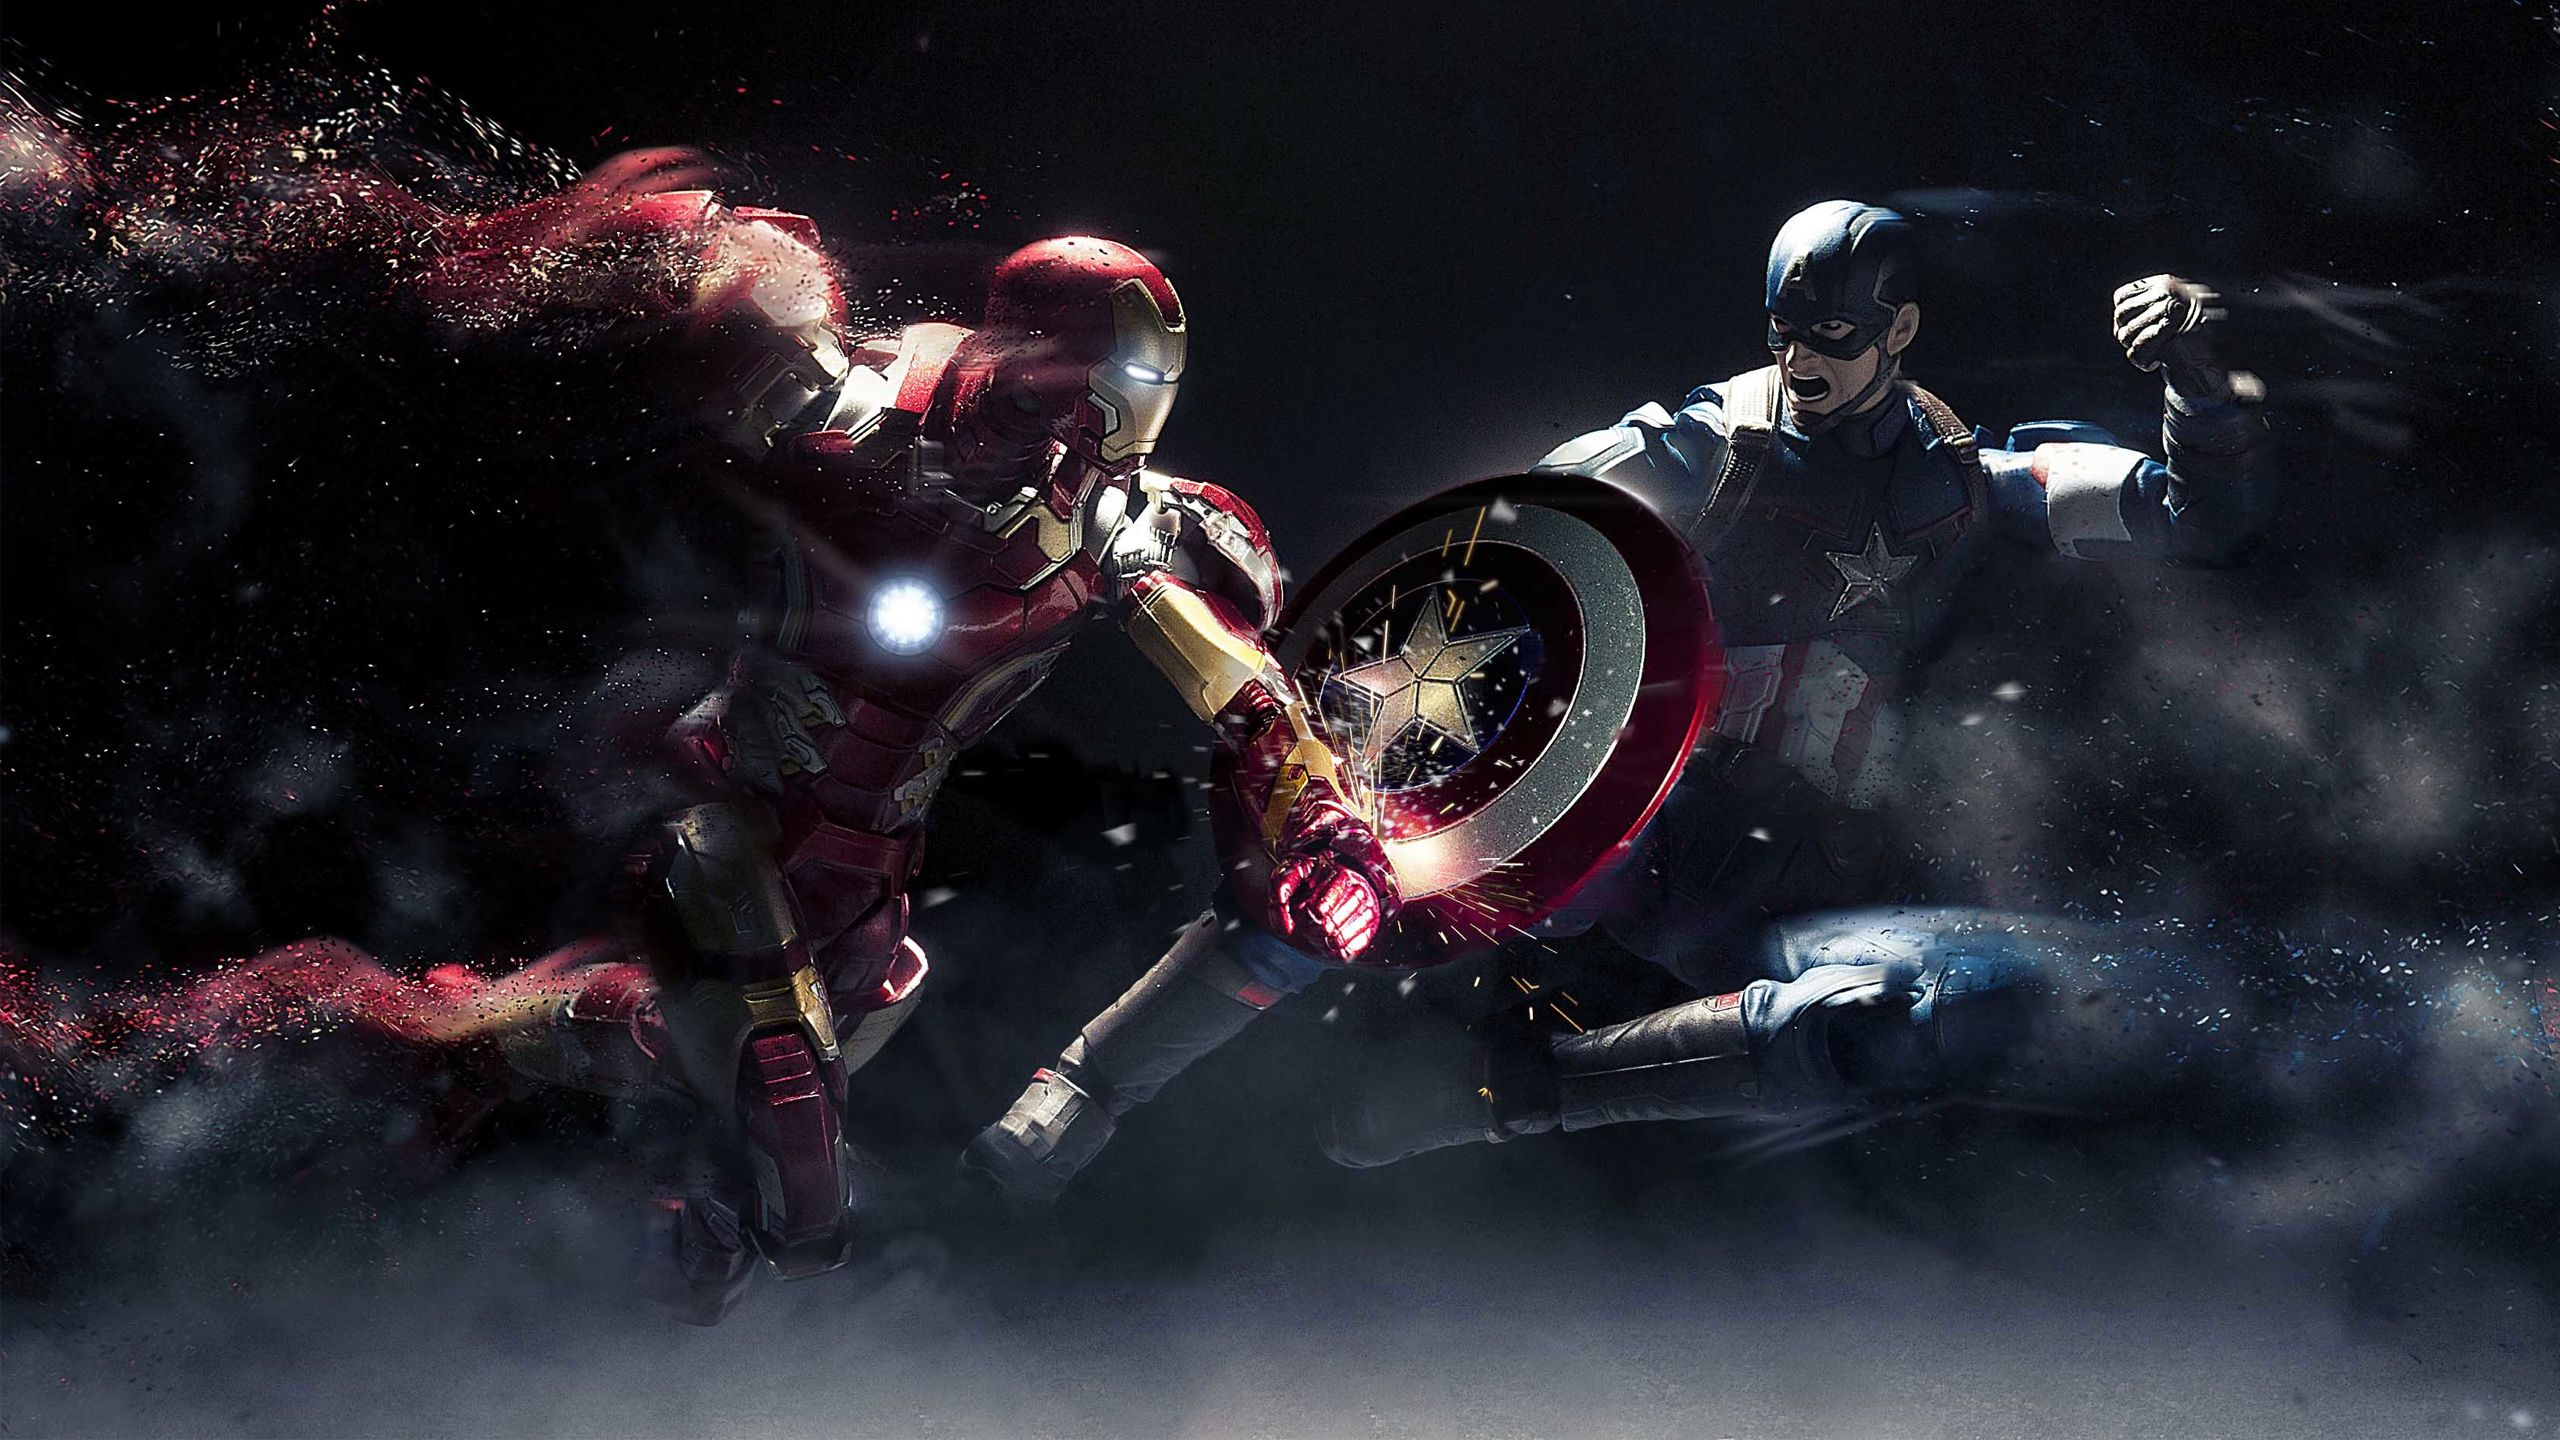 20 Captain America Vs Iron Man Wallpaper Hd Pictures And Ideas On